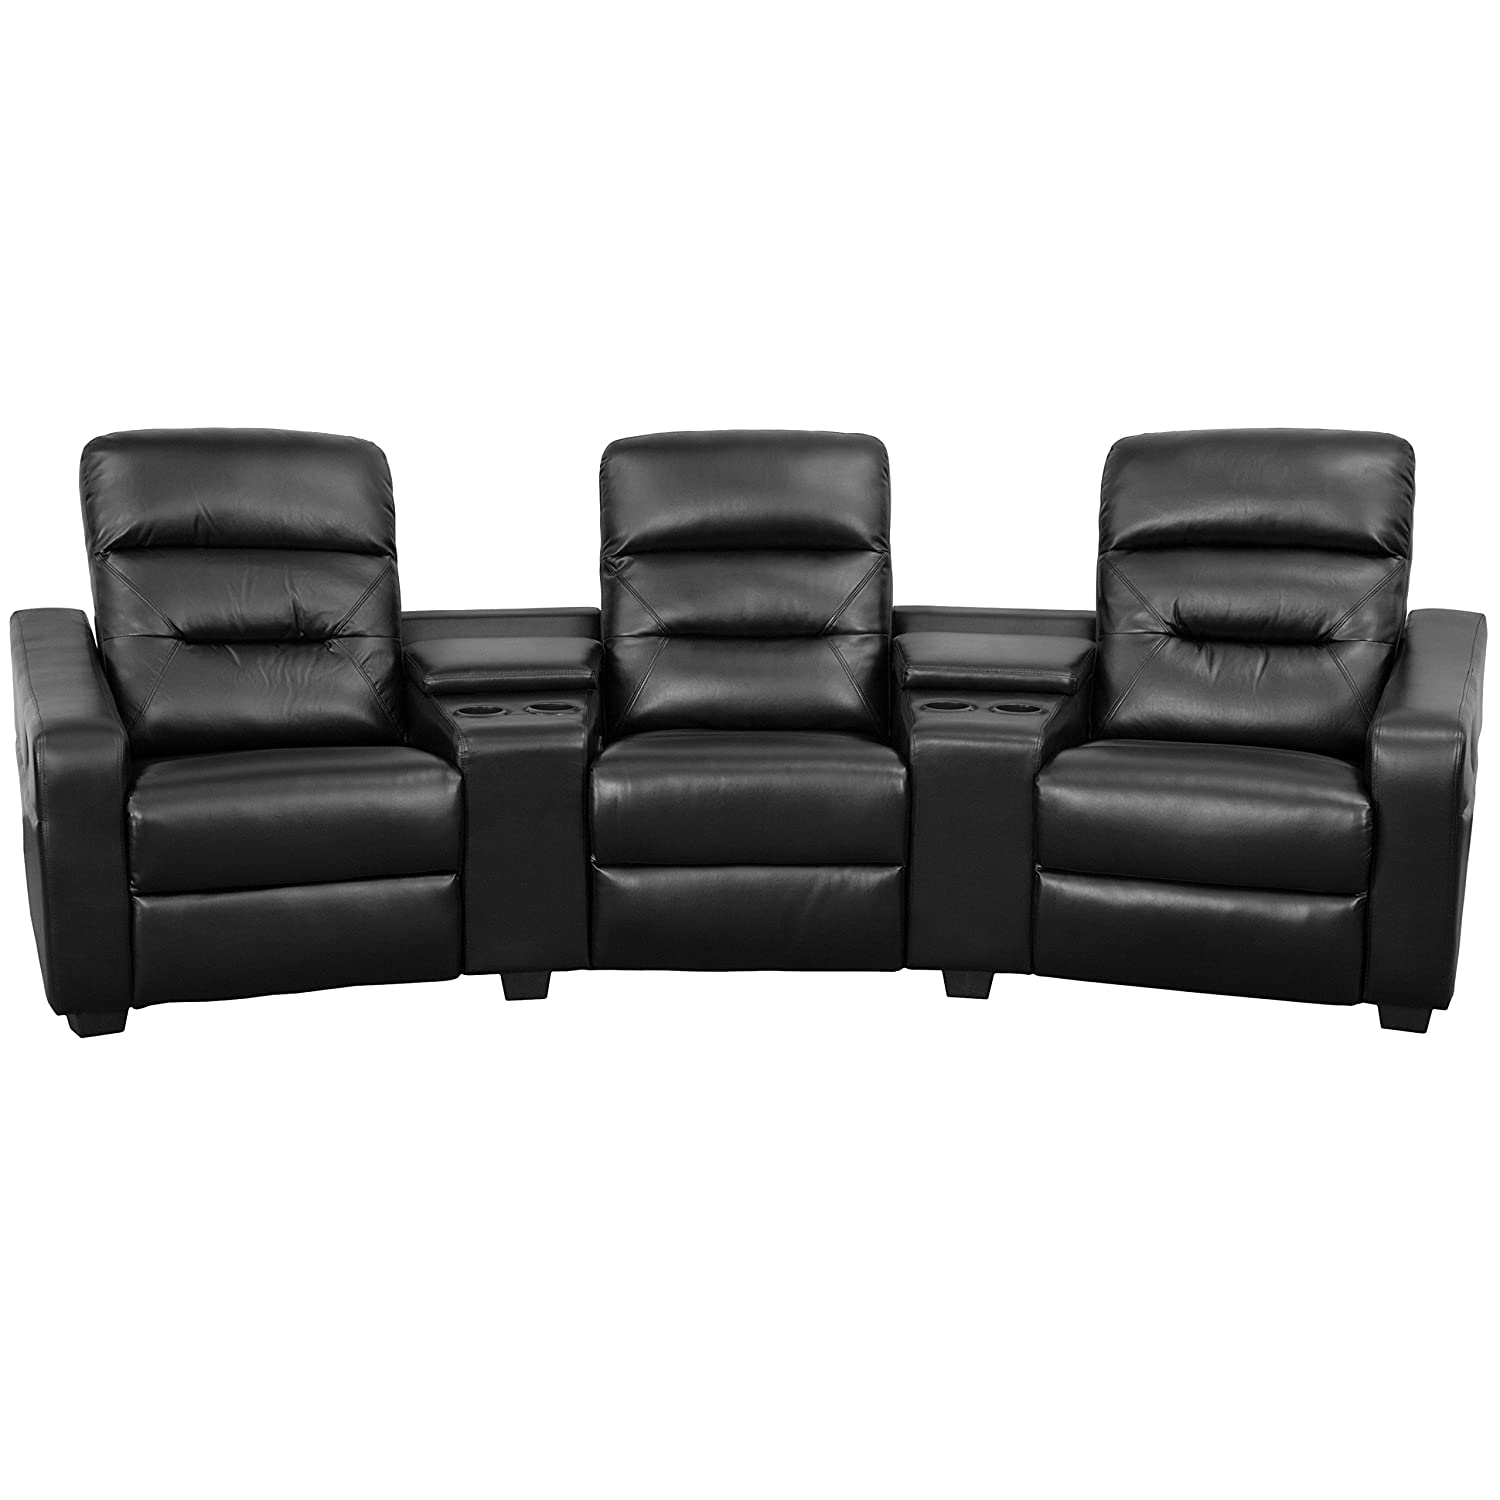 Amazon.com: Flash Furniture Futura Series 3 Seat Reclining Black Leather  Theater Seating Unit With Cup Holders: Kitchen U0026 Dining